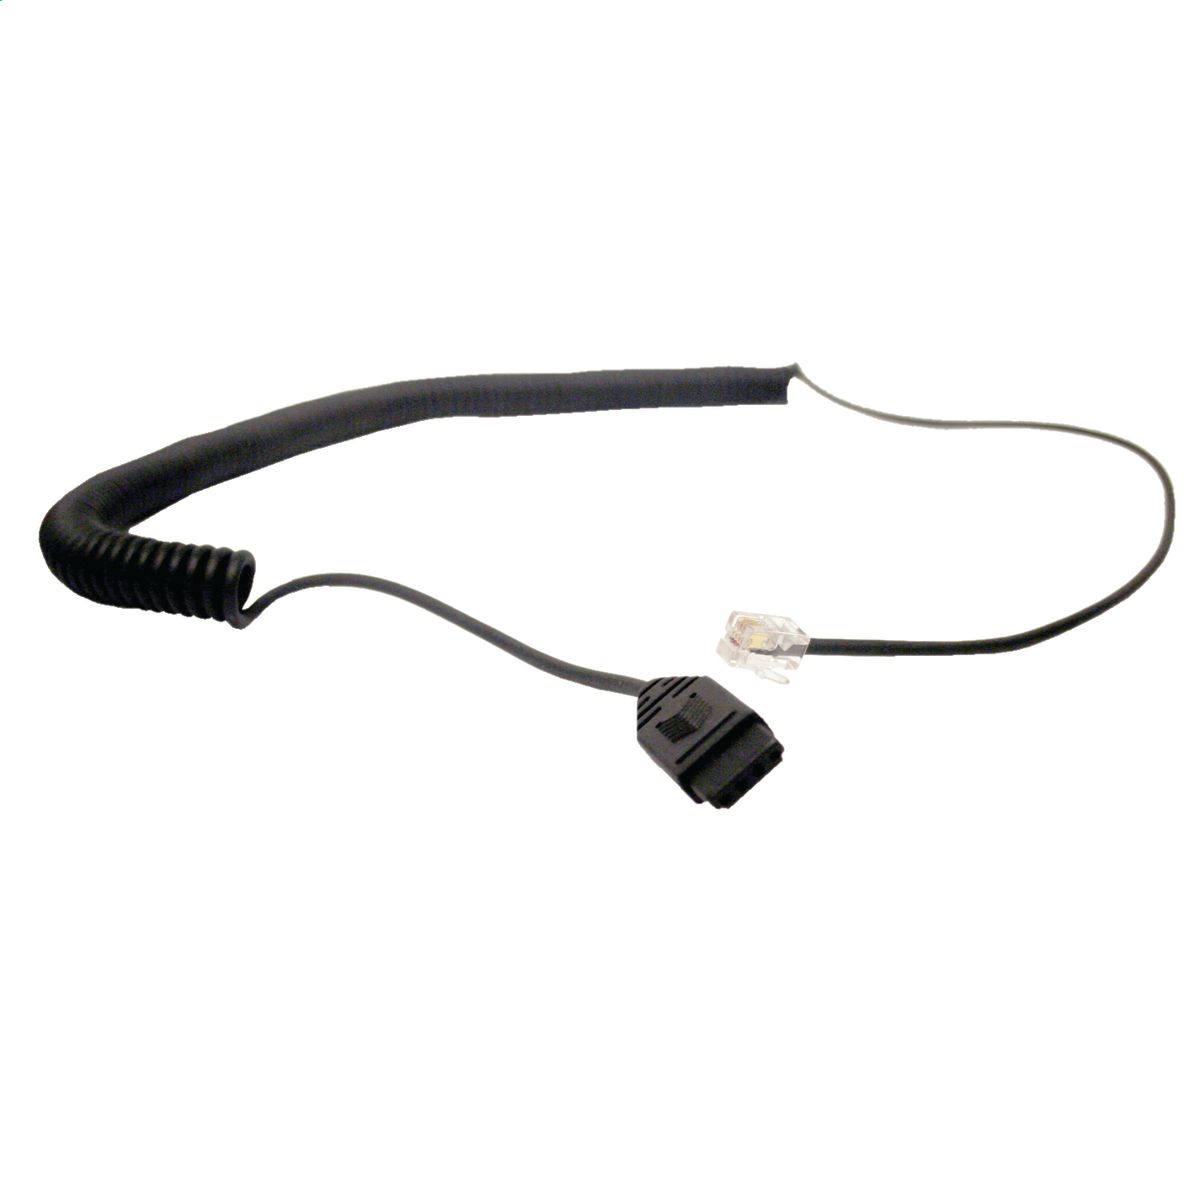 Coiled Cord For Use With Xhs003c Headset No Ptt Requires 25815 003 Switch Wiring